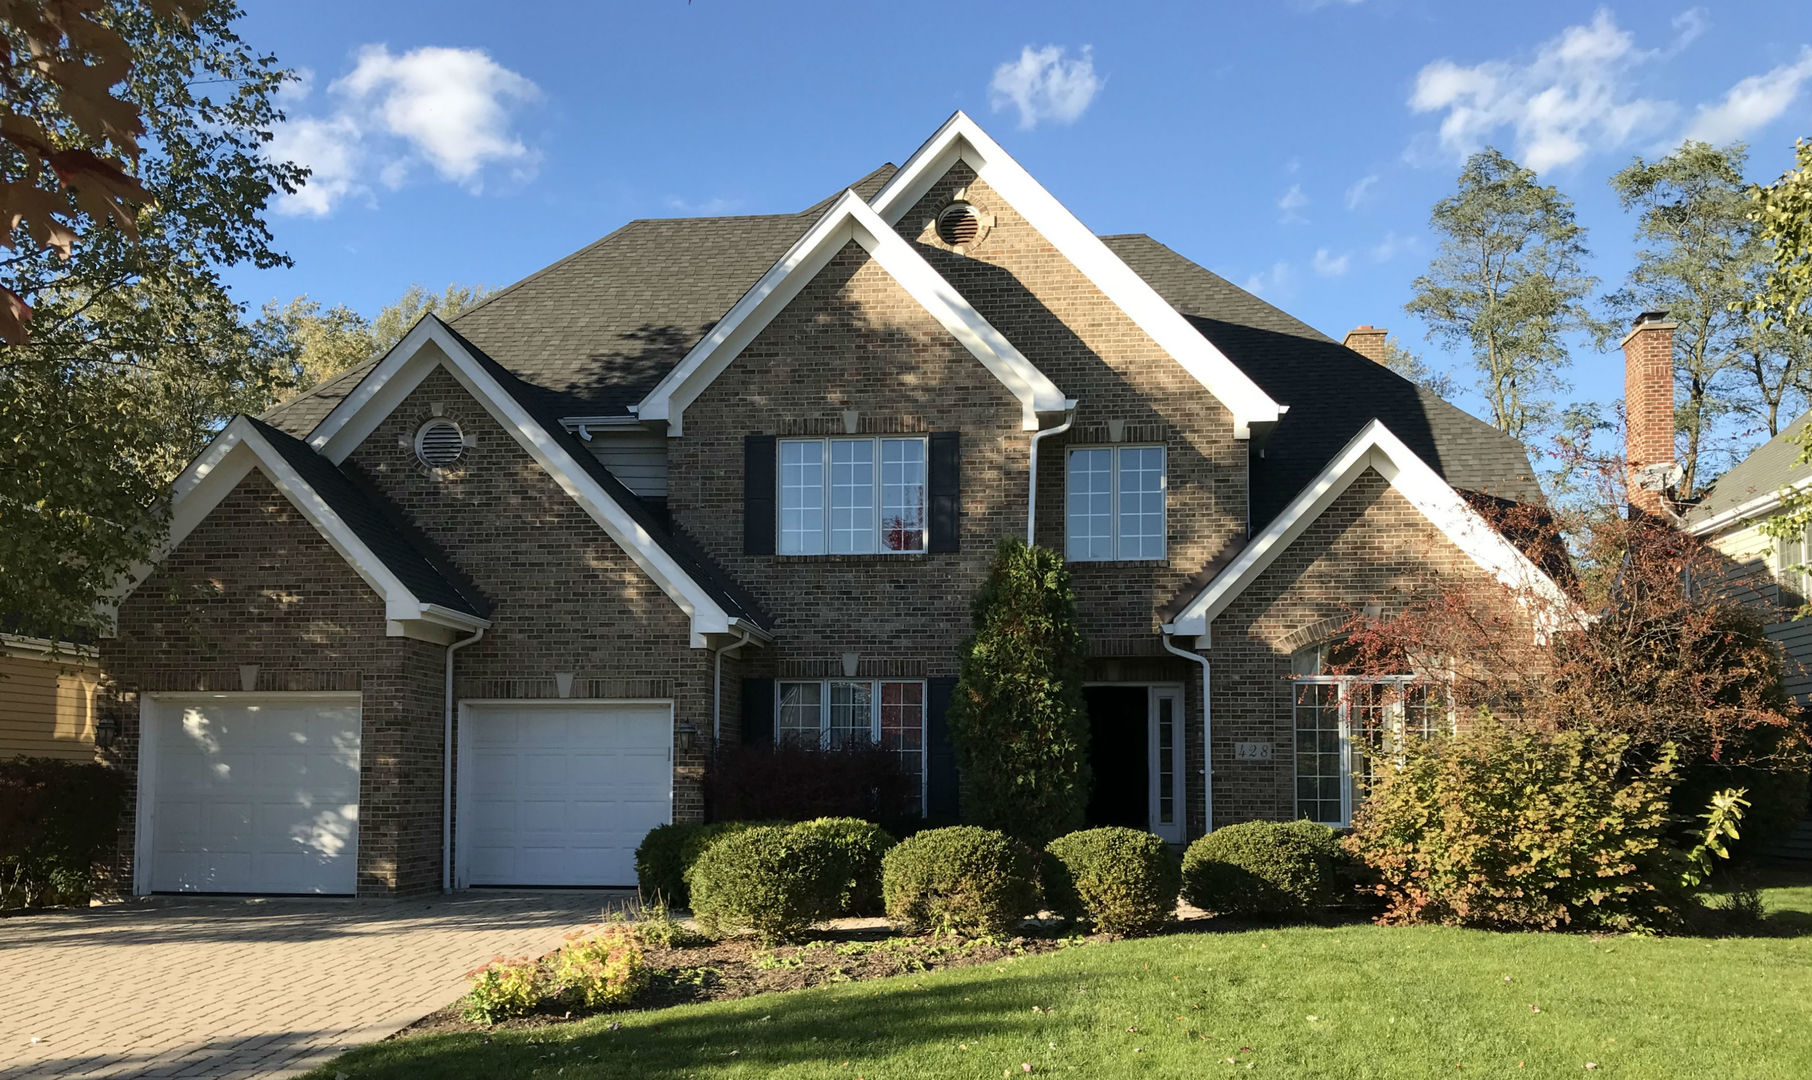 428 EAST 58TH STREET, WESTMONT, IL 60559